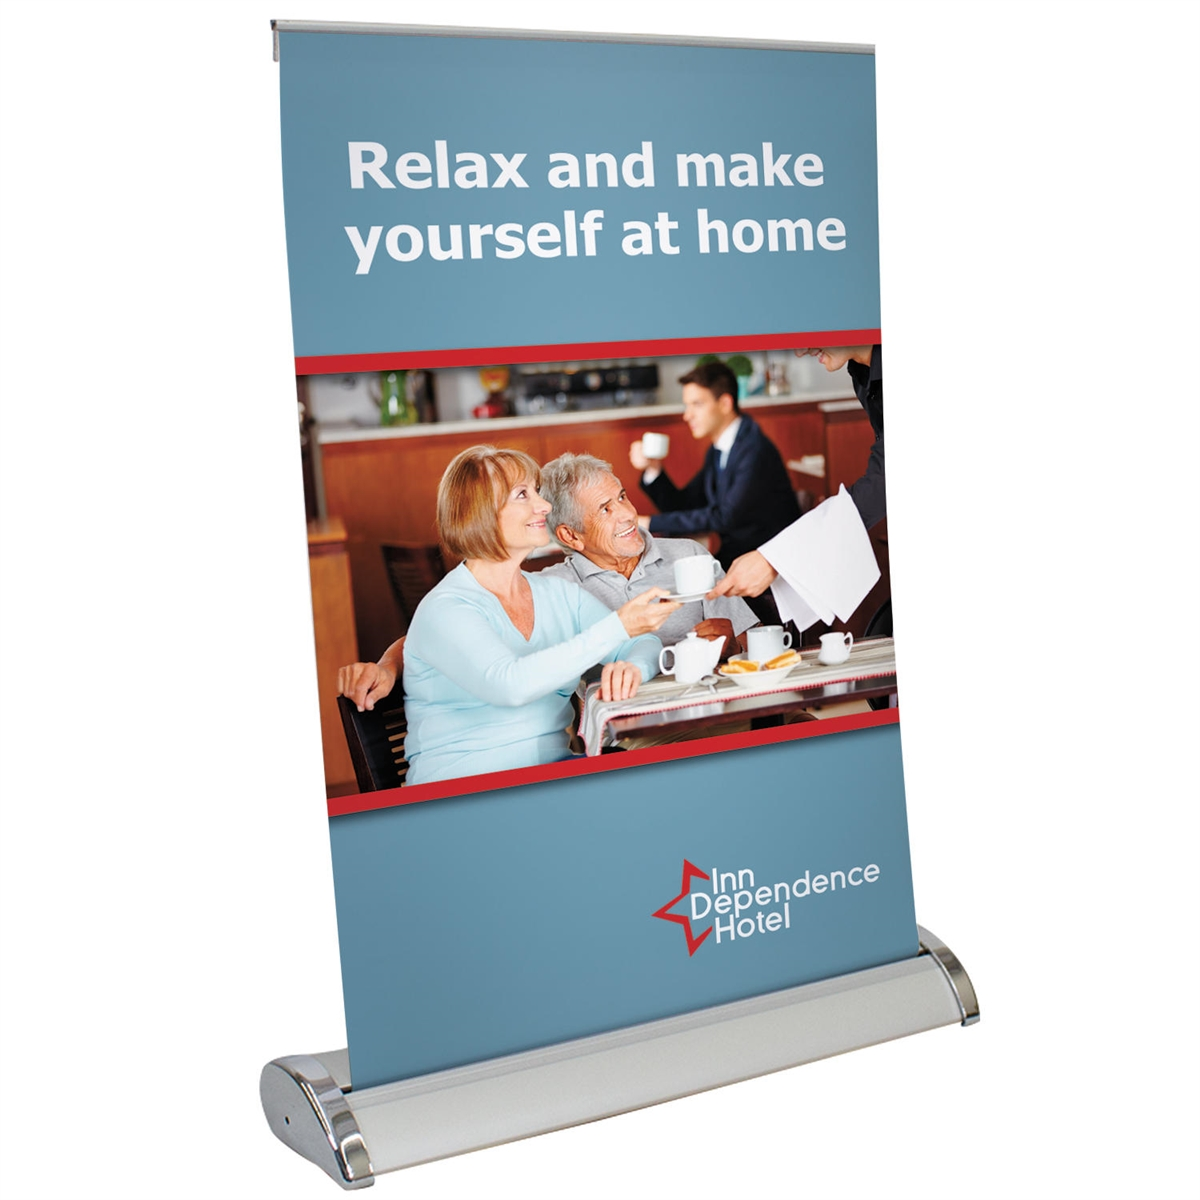 11 Quot X 17 Quot Retractable Table Top Banner Stand